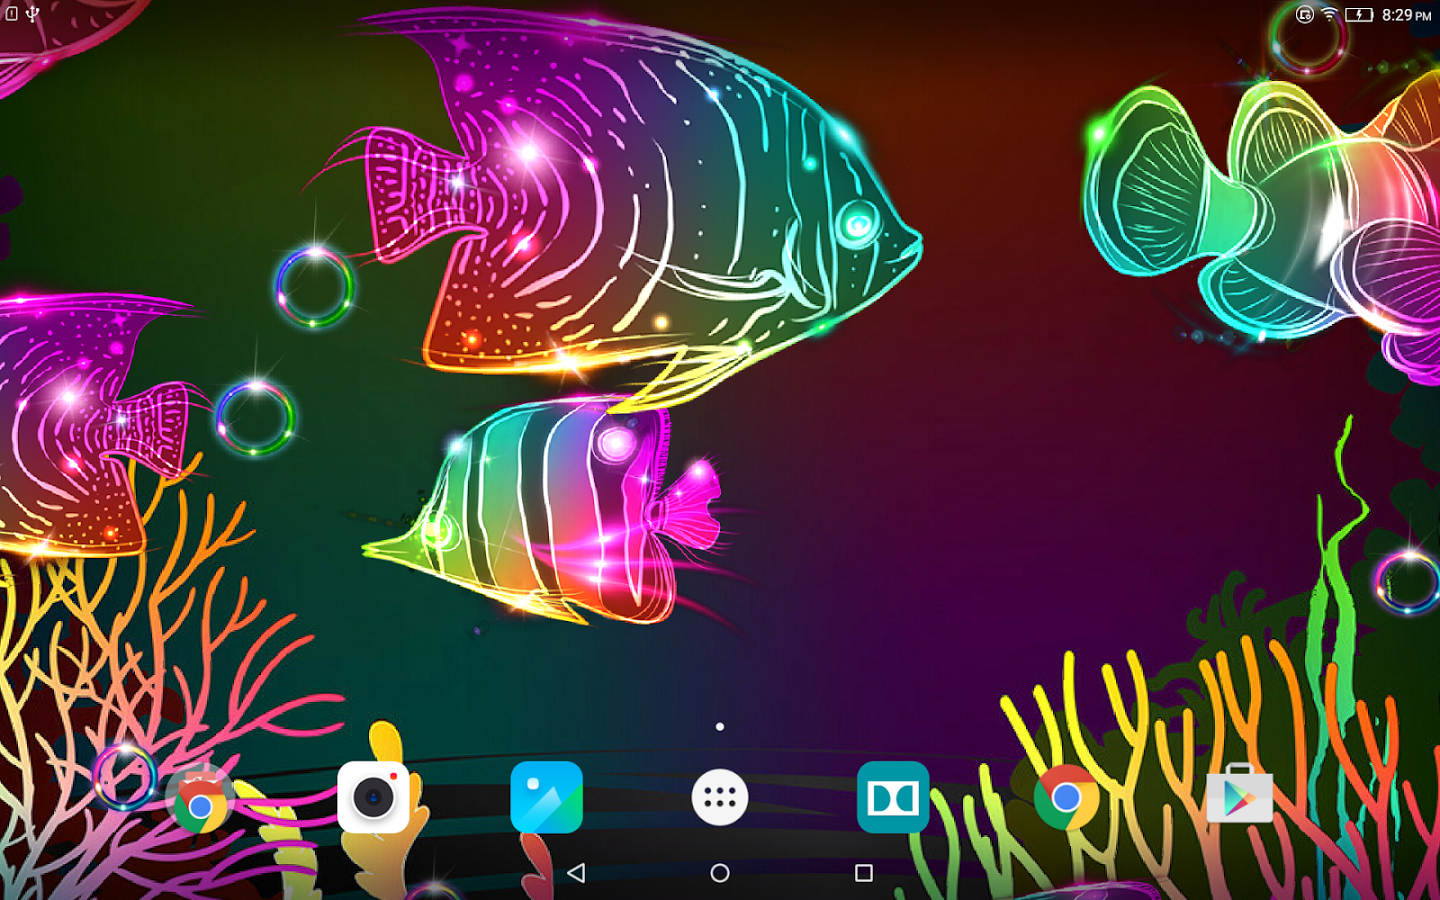 Neon Fish Live Wallpaper - Android Apps on Google Play | BING IMAGES | Pinterest | Live ...